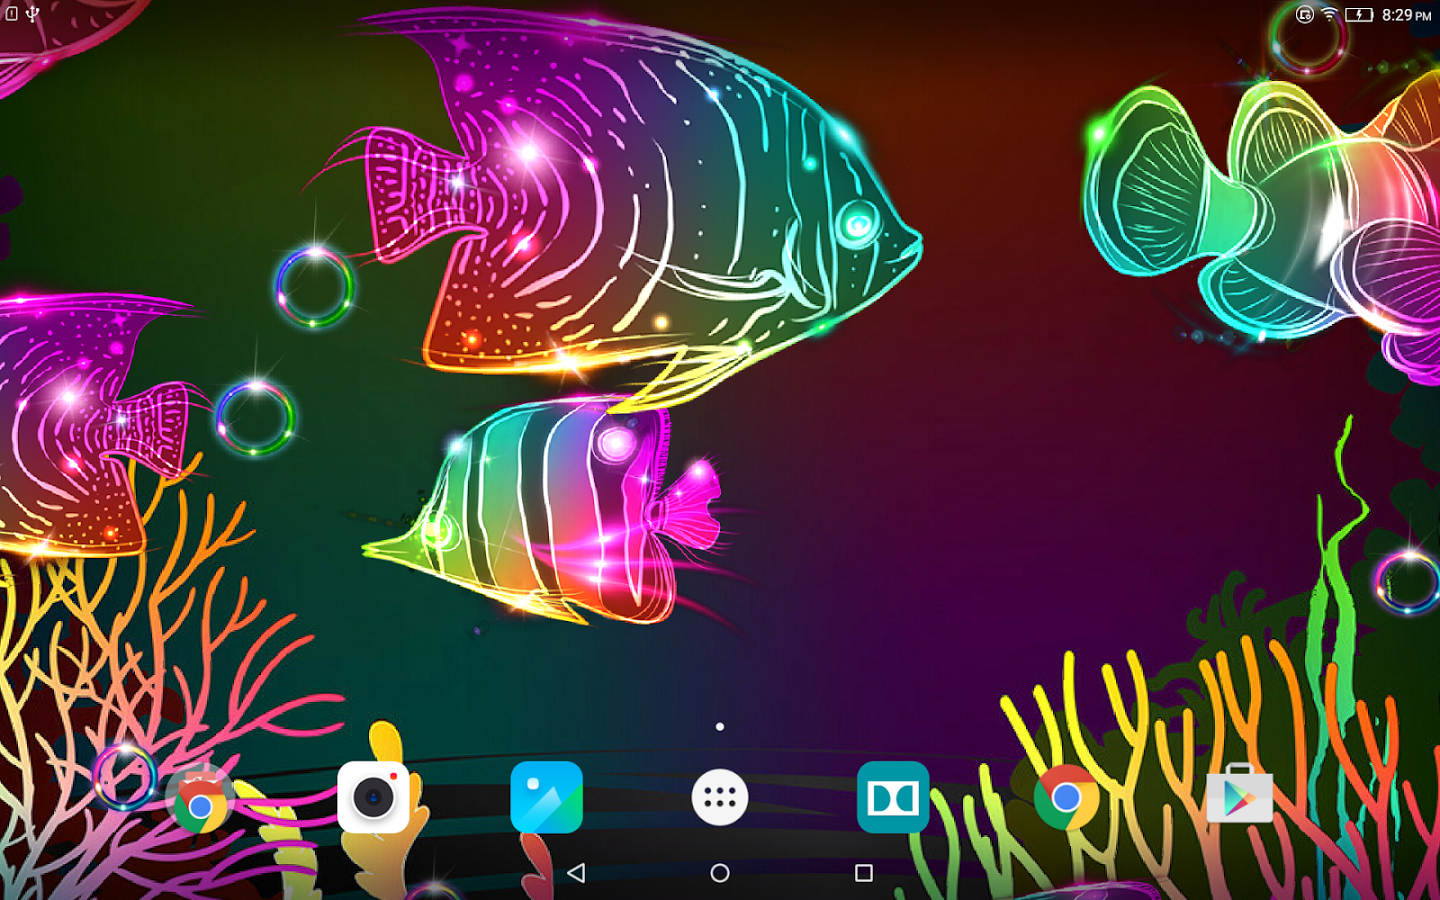 Neon Fish Live Wallpaper - Android Apps on Google Play | BING IMAGES | Pinterest | Live ...